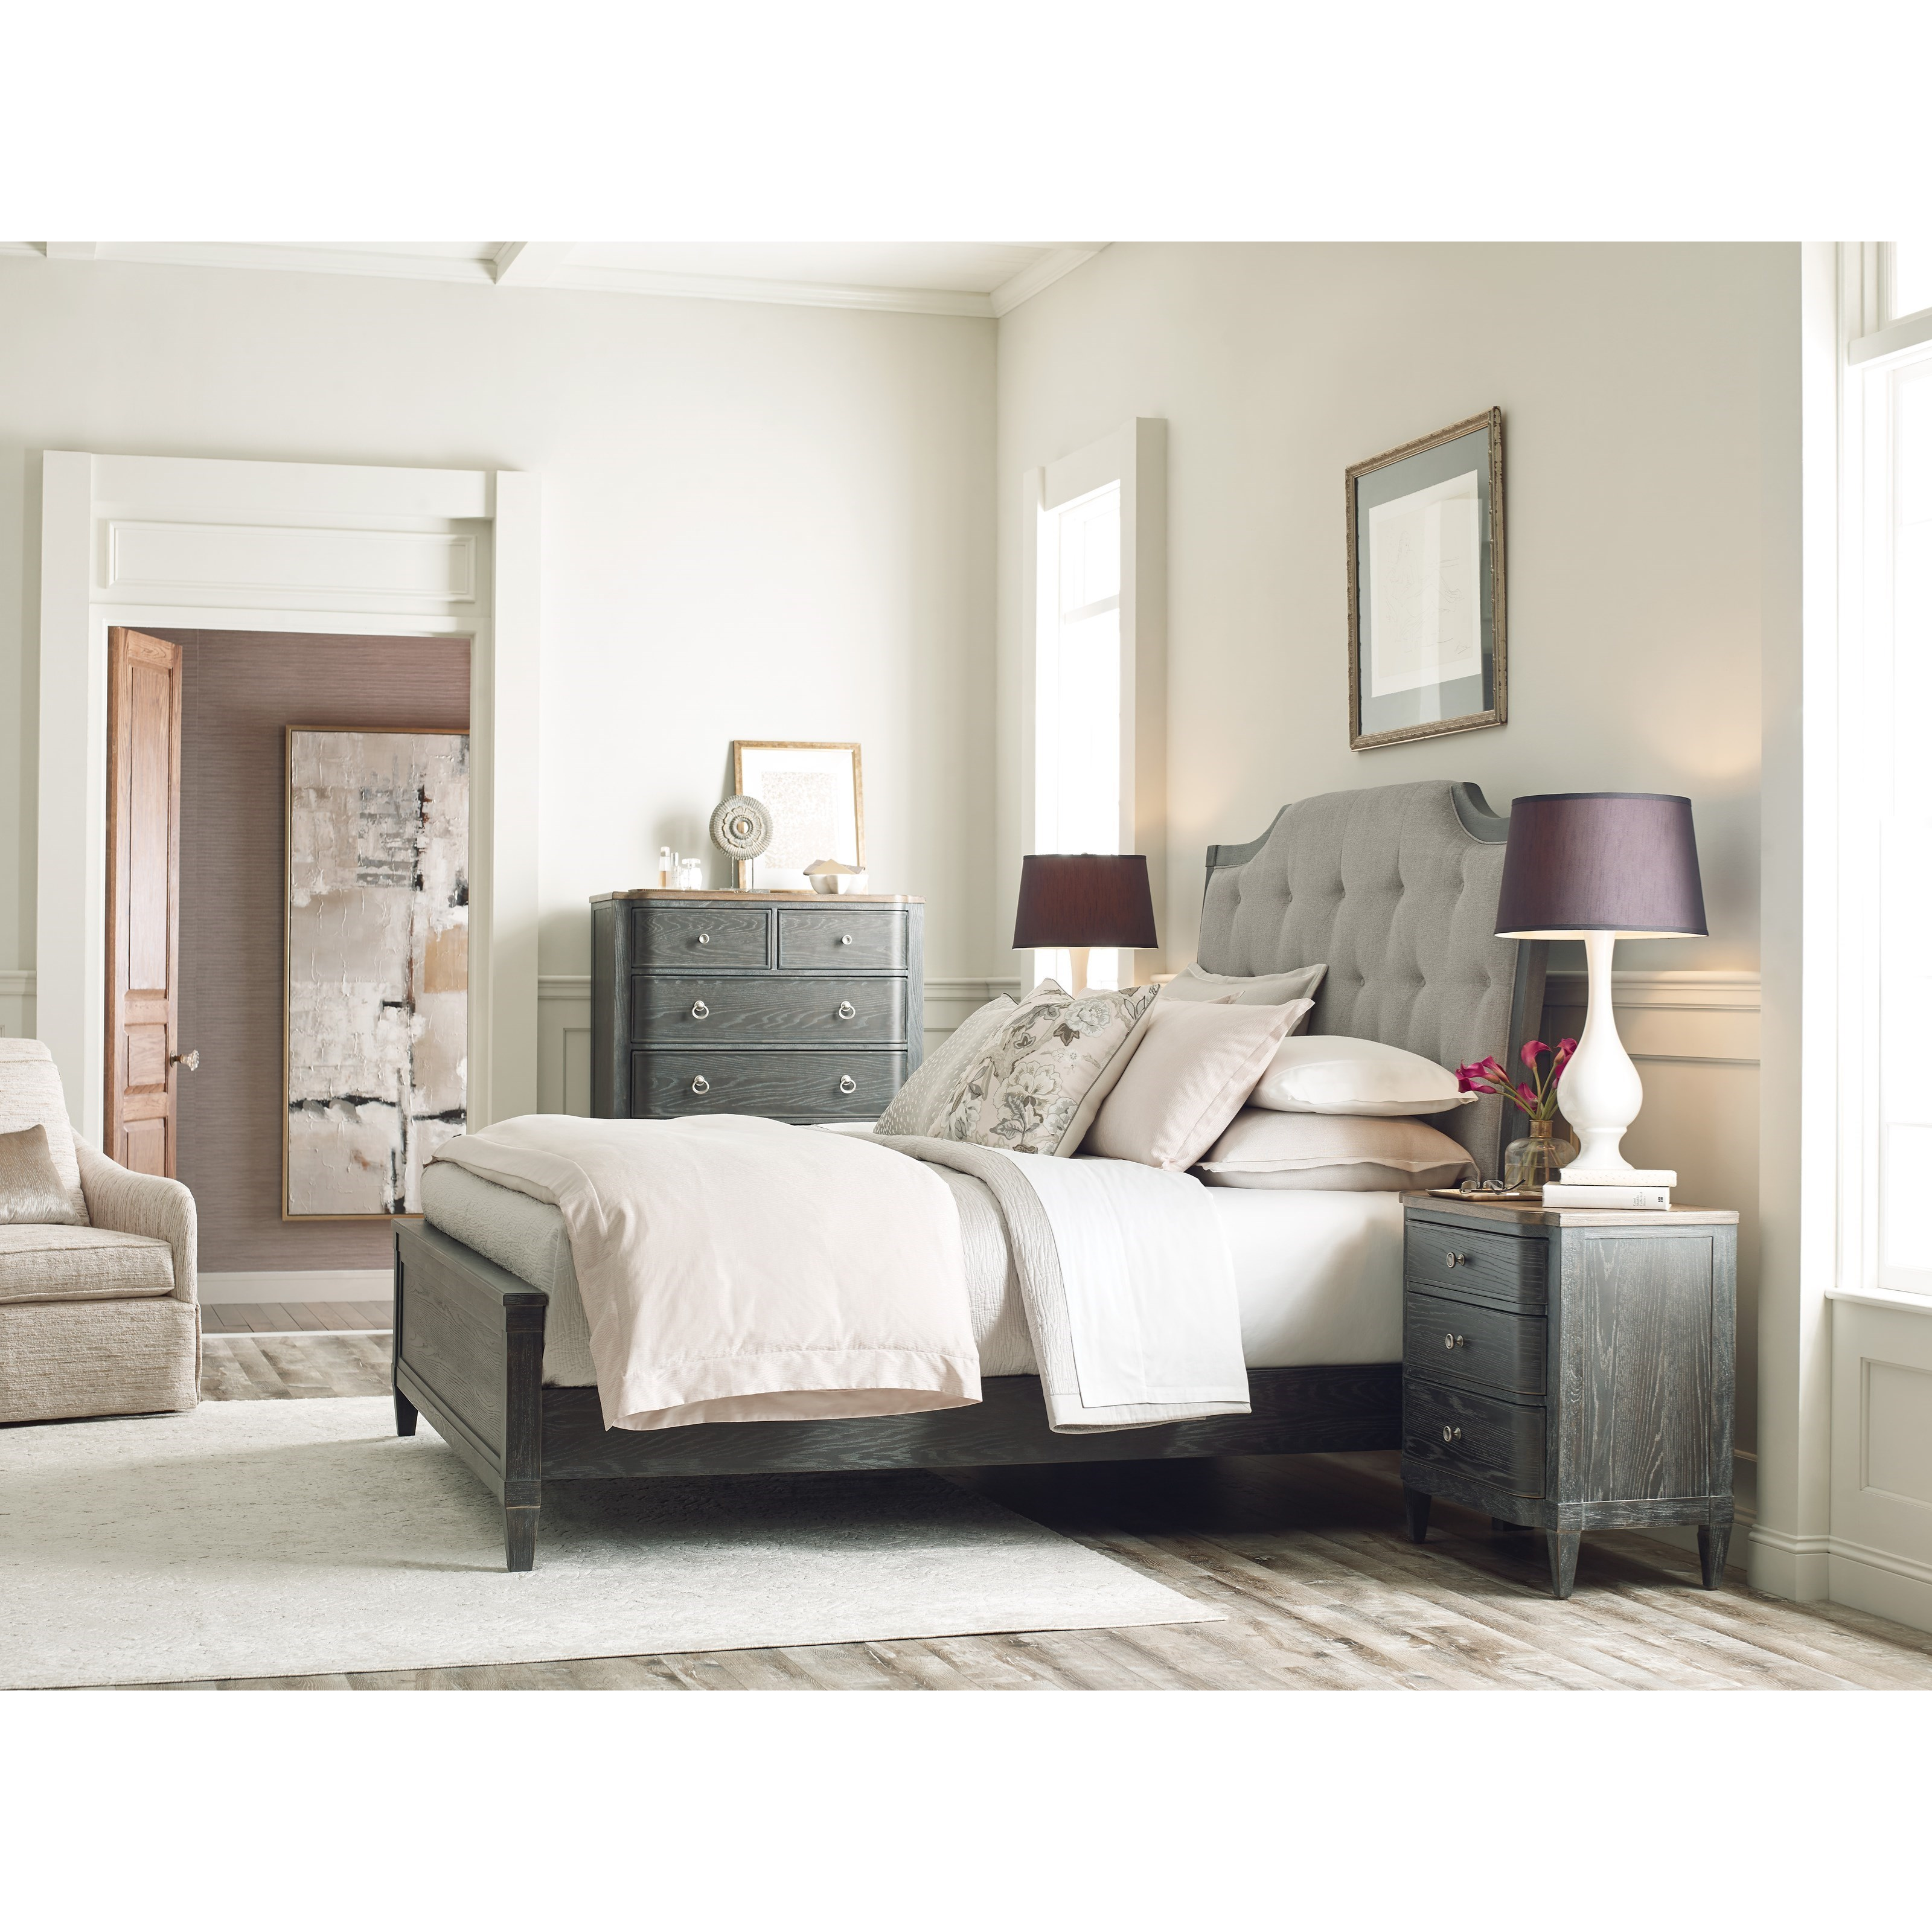 Ardennes California King Bedroom Group by American Drew at Alison Craig Home Furnishings